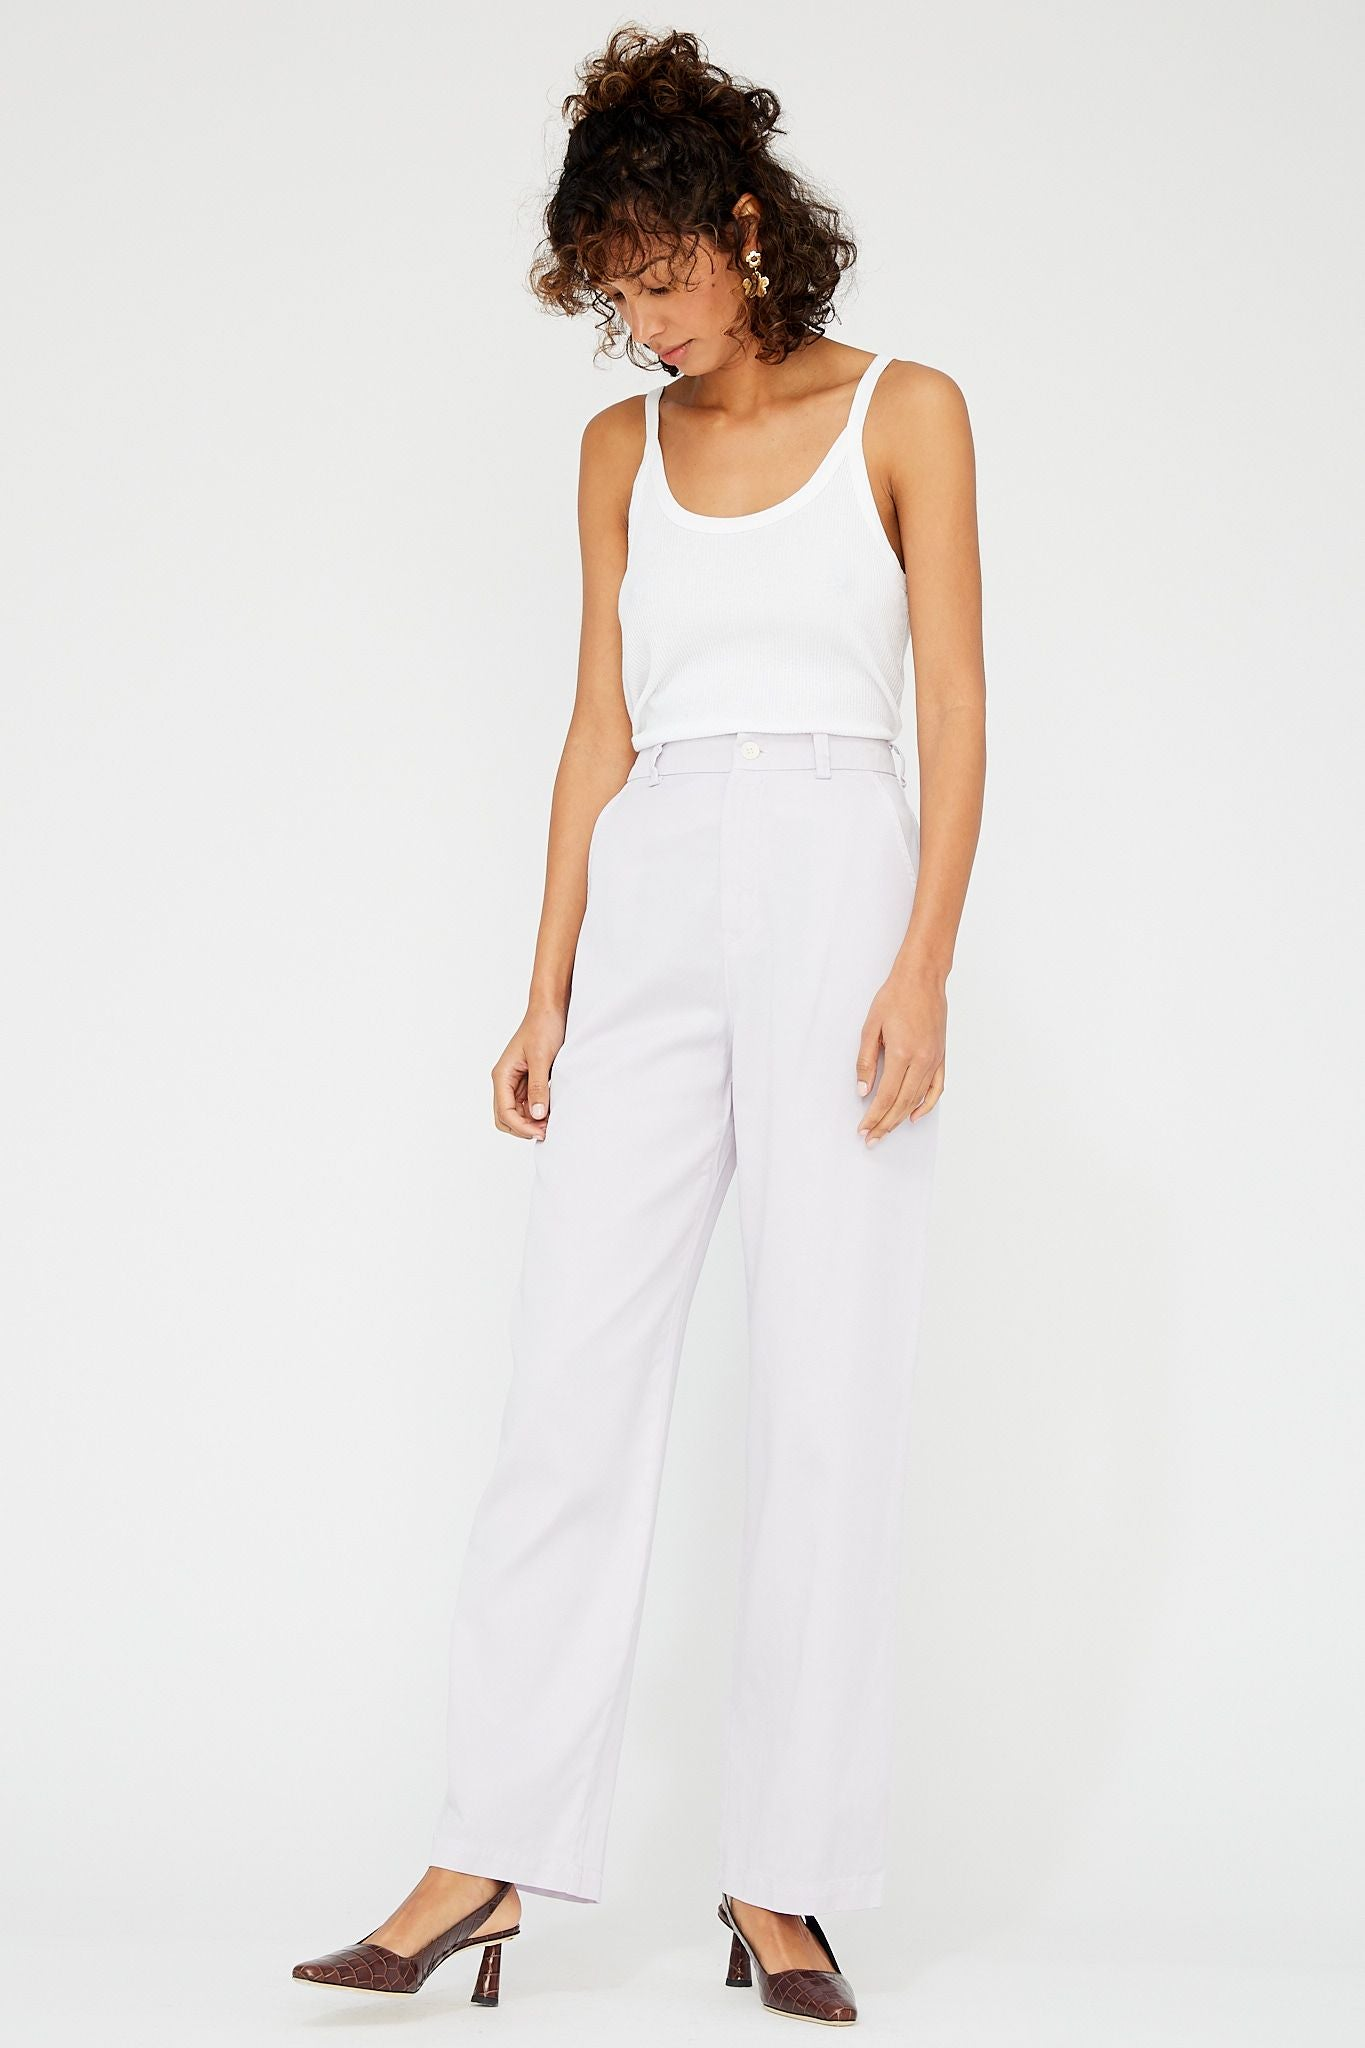 Pyper Trousers - Lilac SAMPLE